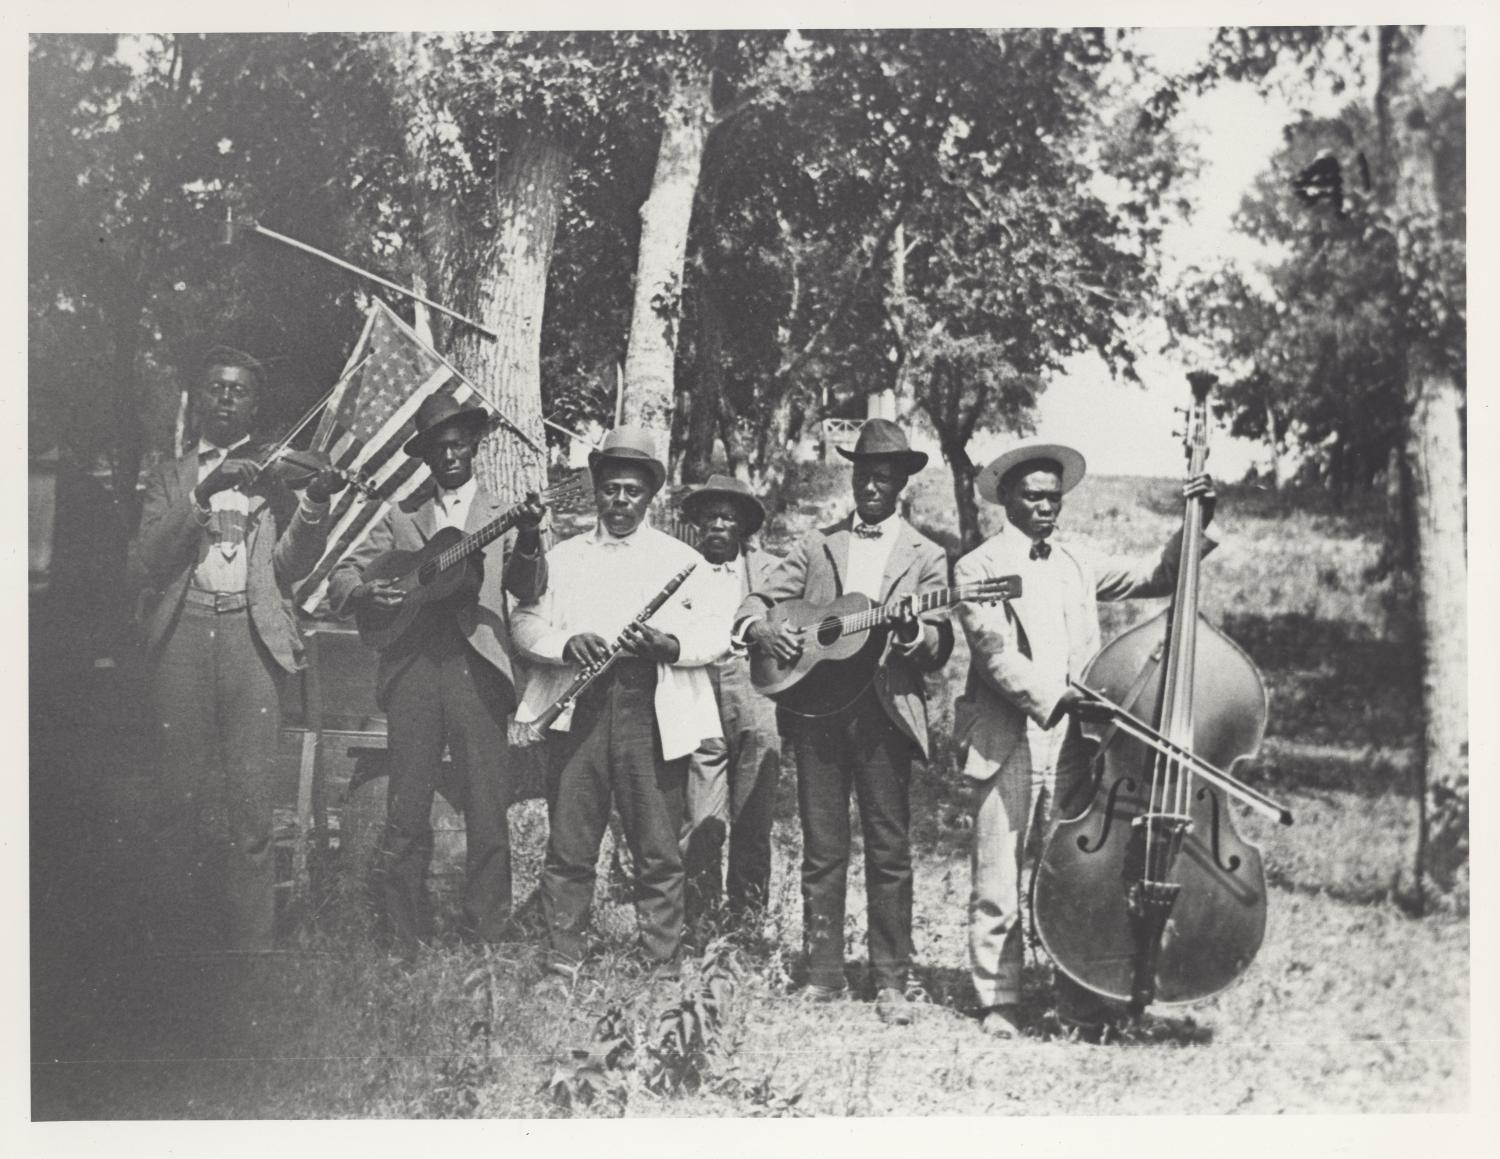 A vintage, black-and-white photo of a group of dark-skinned African American men standing in a wooded area. They are dressed in top hats, suit jackets, and slacks. Most all hold an instrument, including guitars, a cello, violin, and flute. Behind them an American flag is hanging off of a tree.